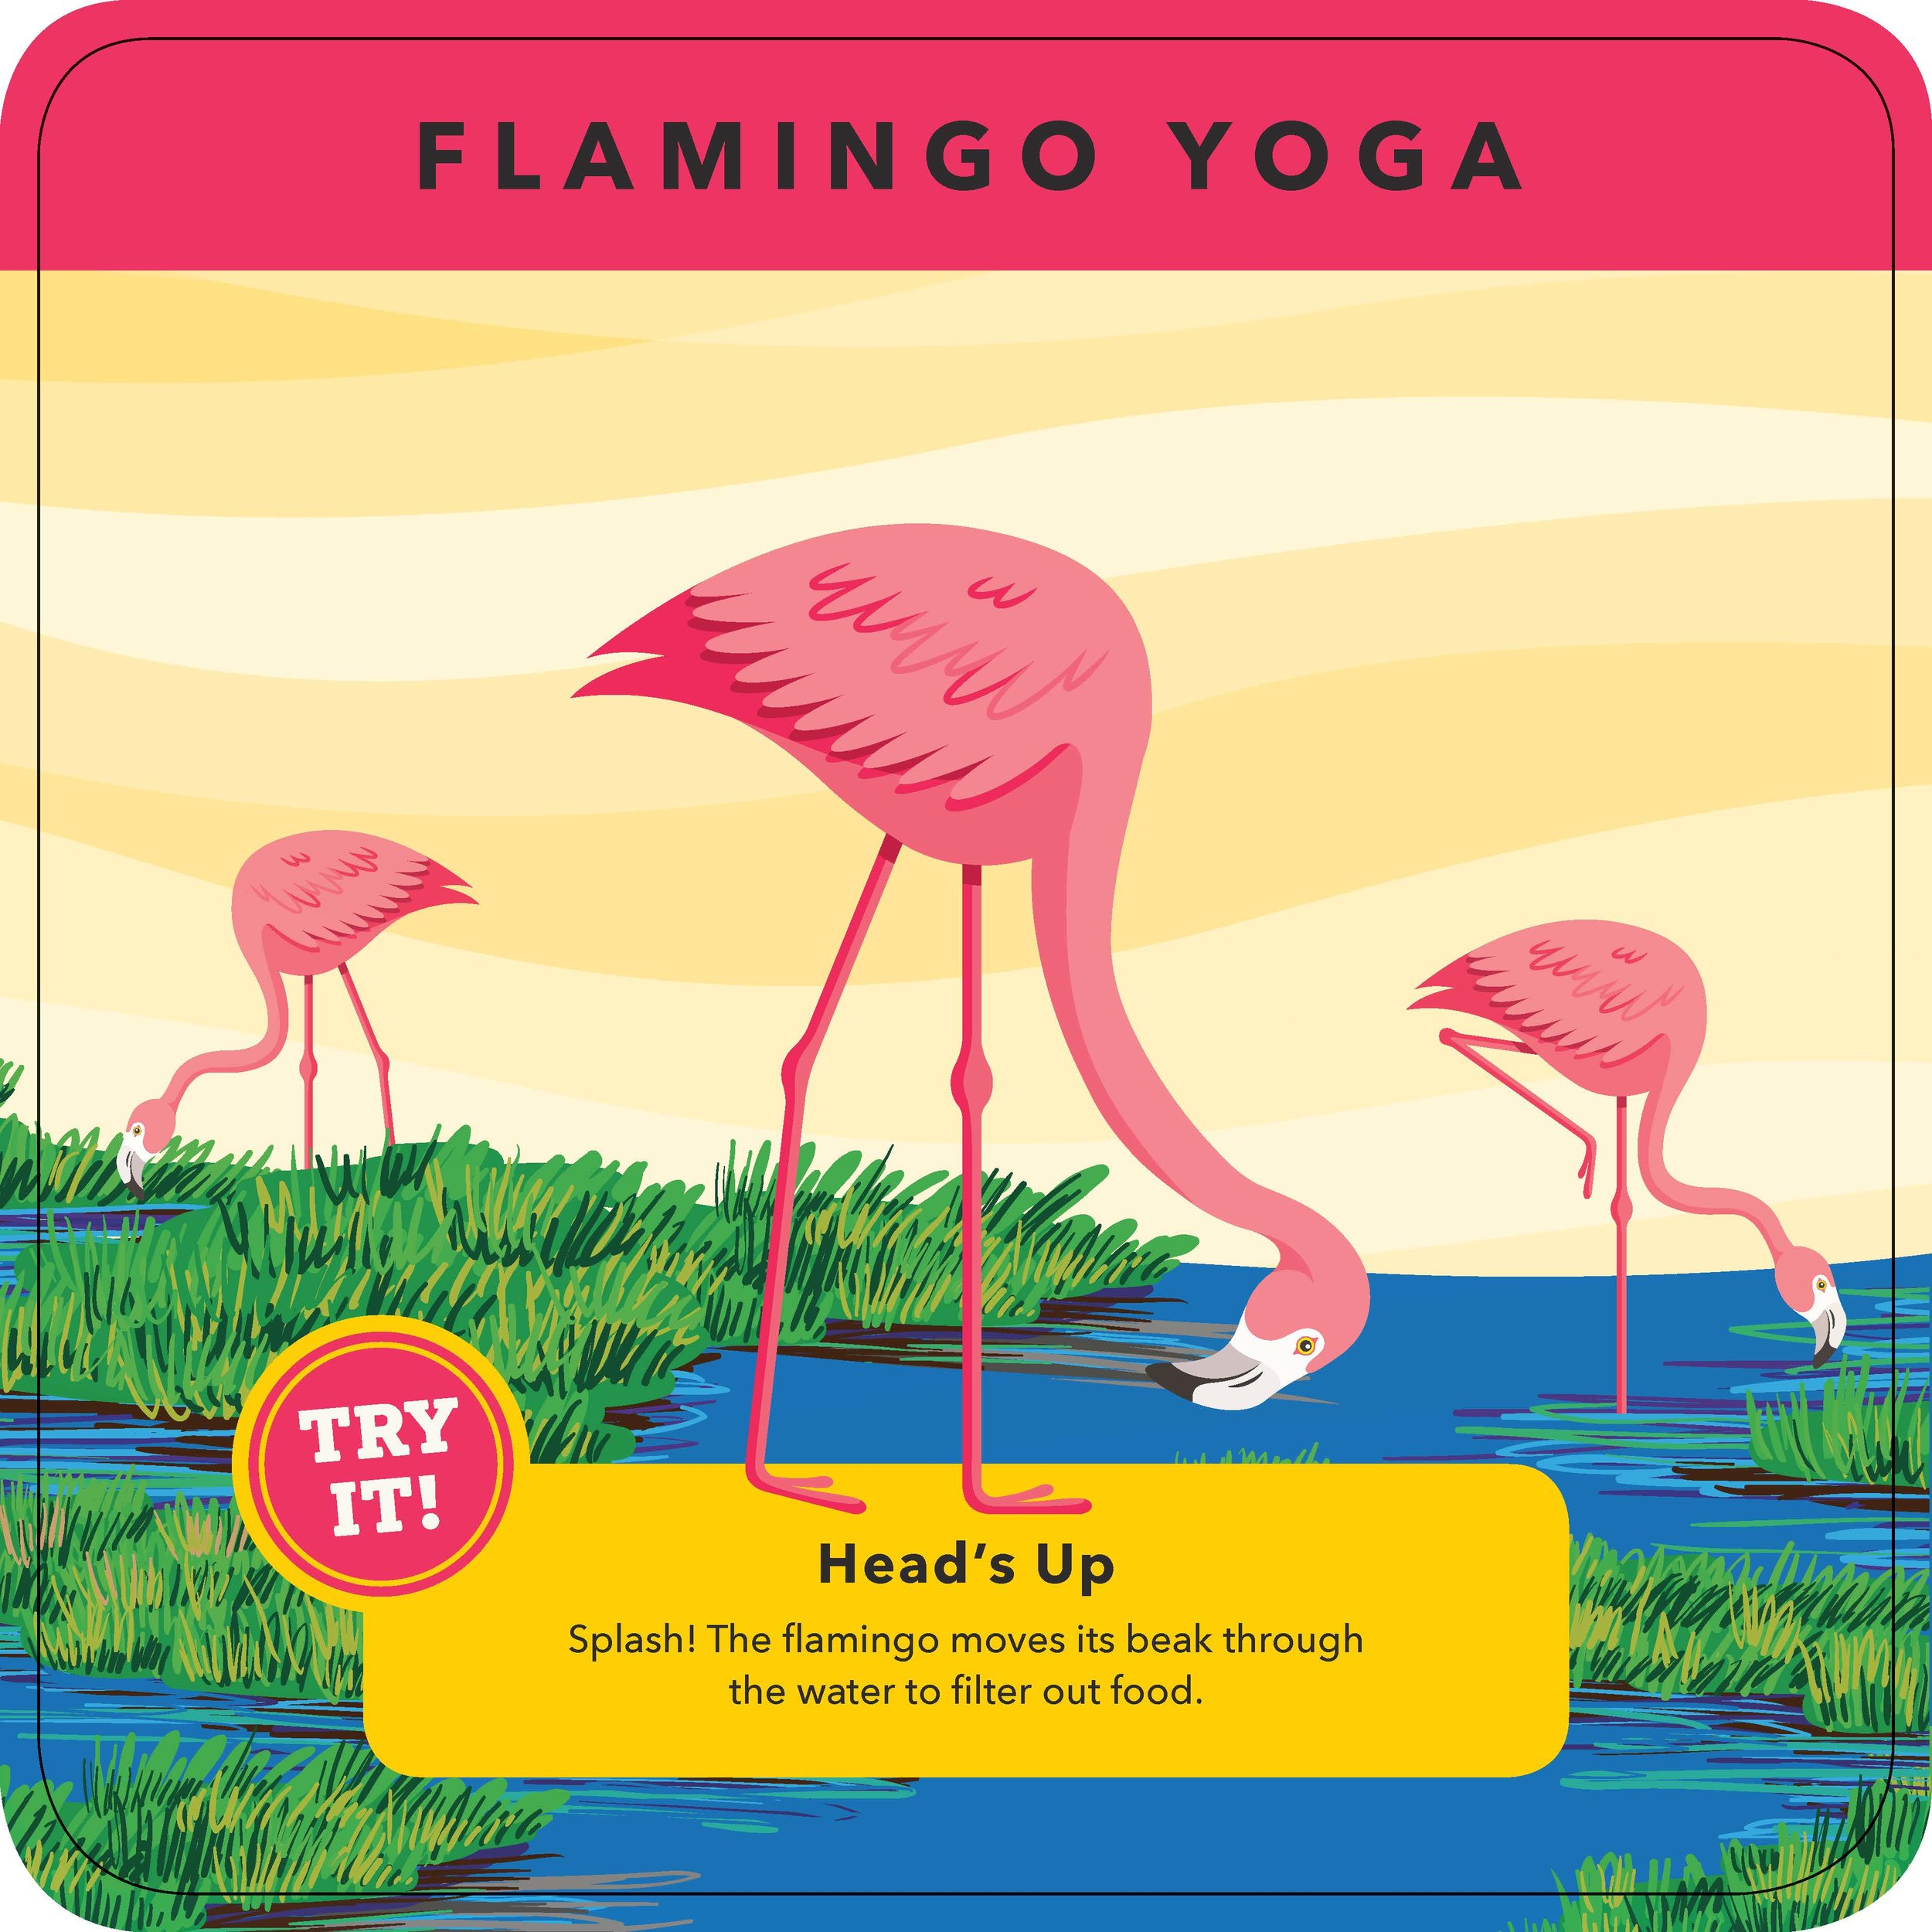 Flamingo yoga.jpg